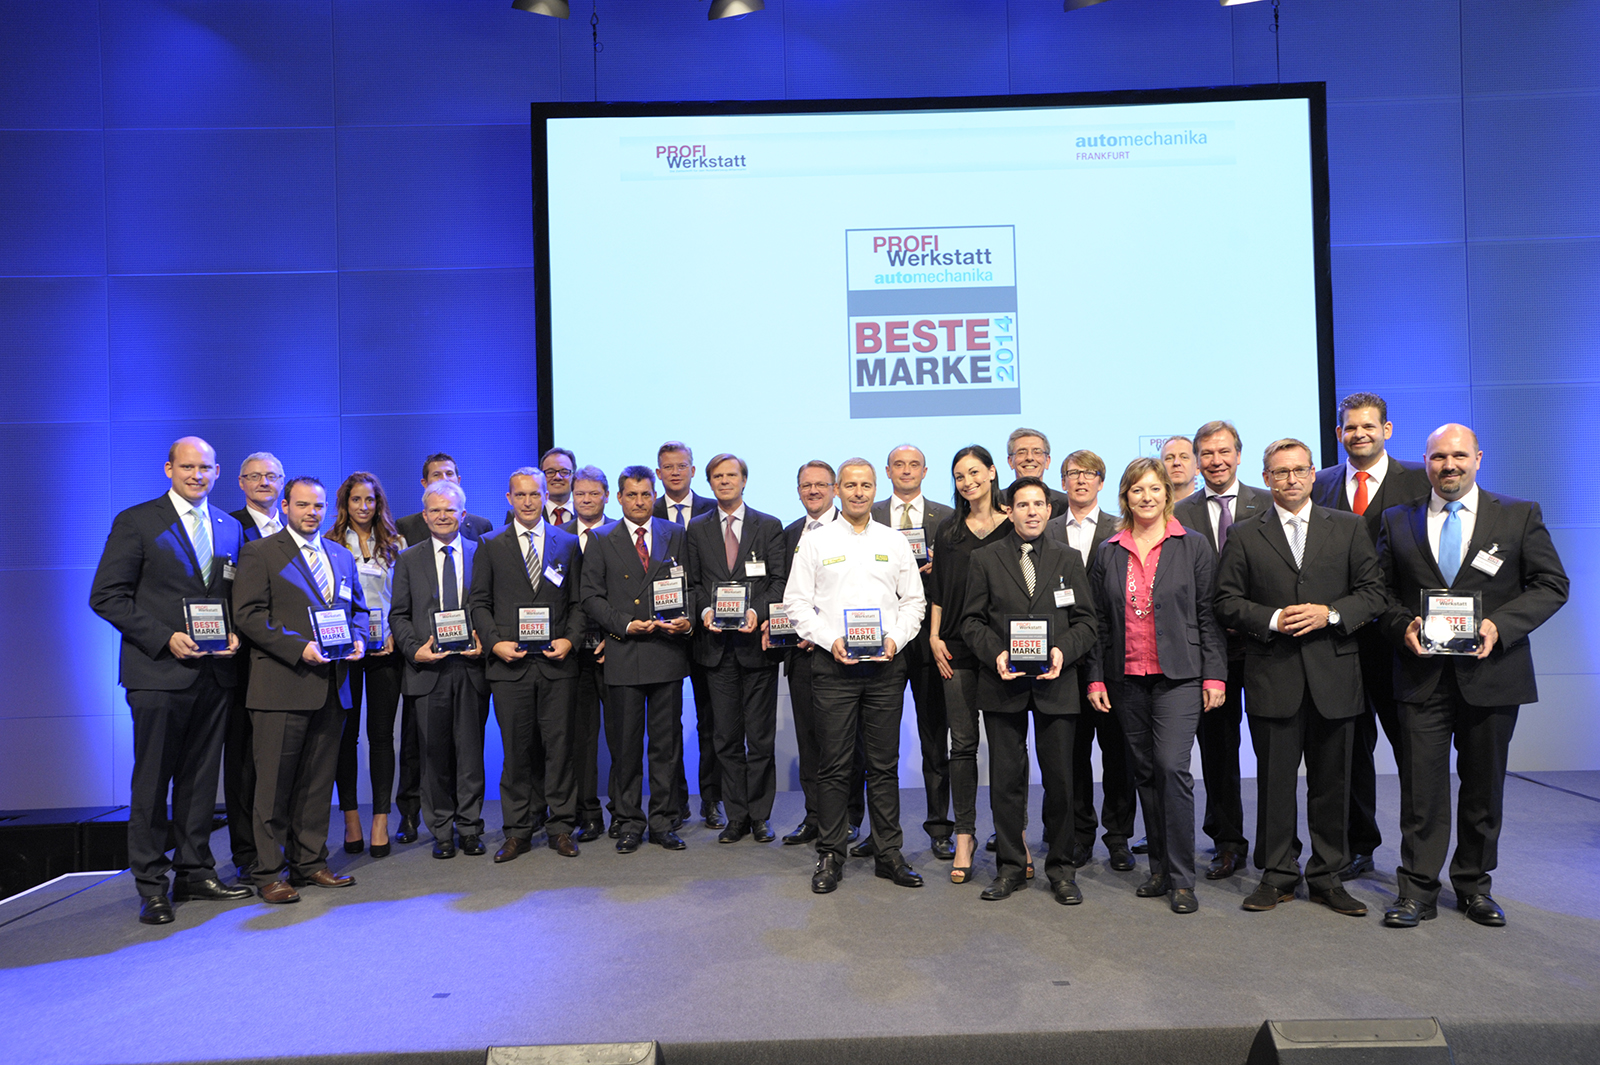 Best PROFI Werkstatt Brand 2014 at Automechanika